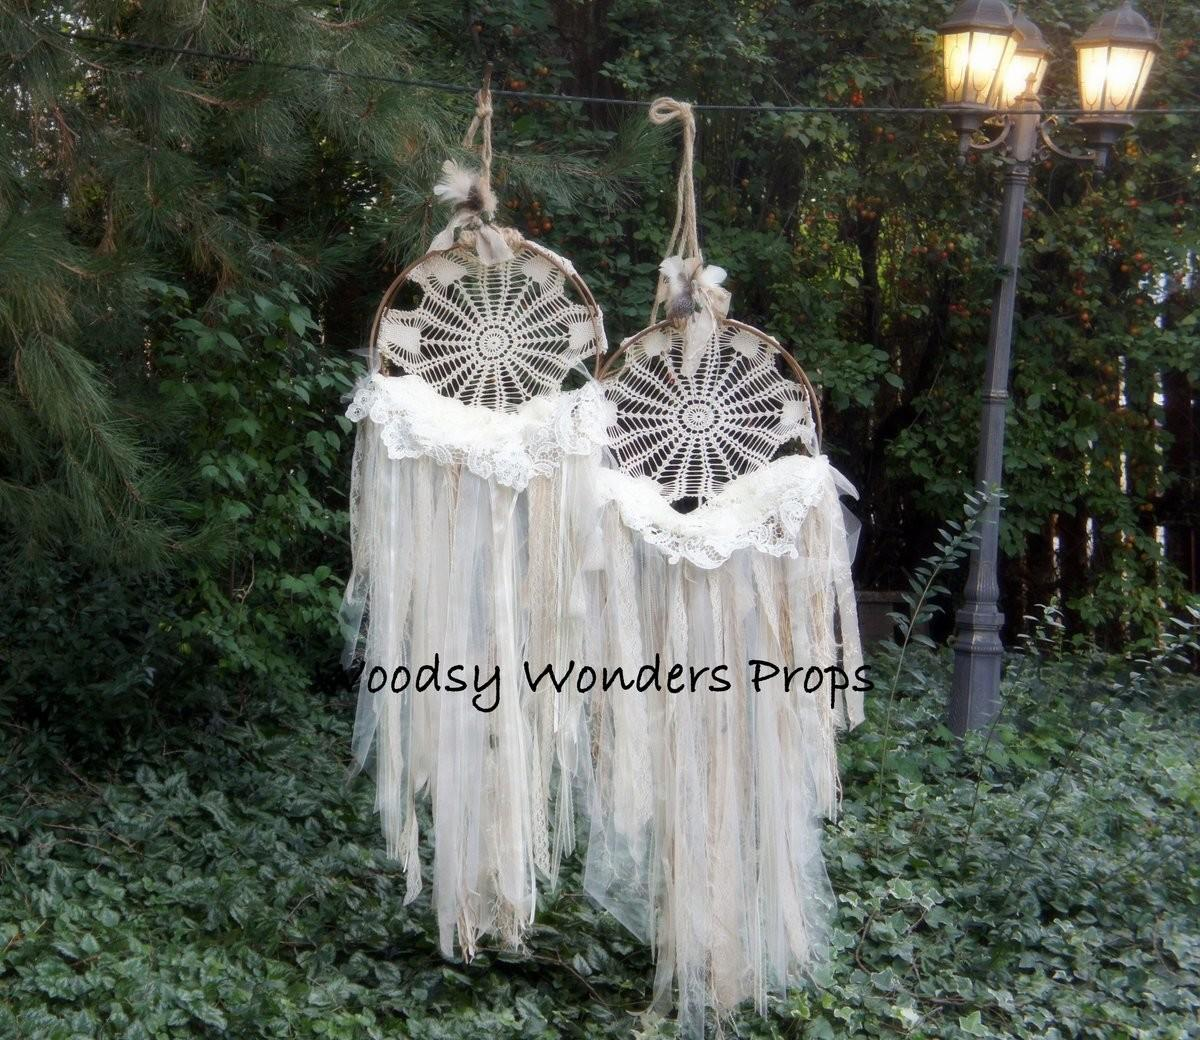 Woodsy Wonders Props More Bohemian Style Newborn